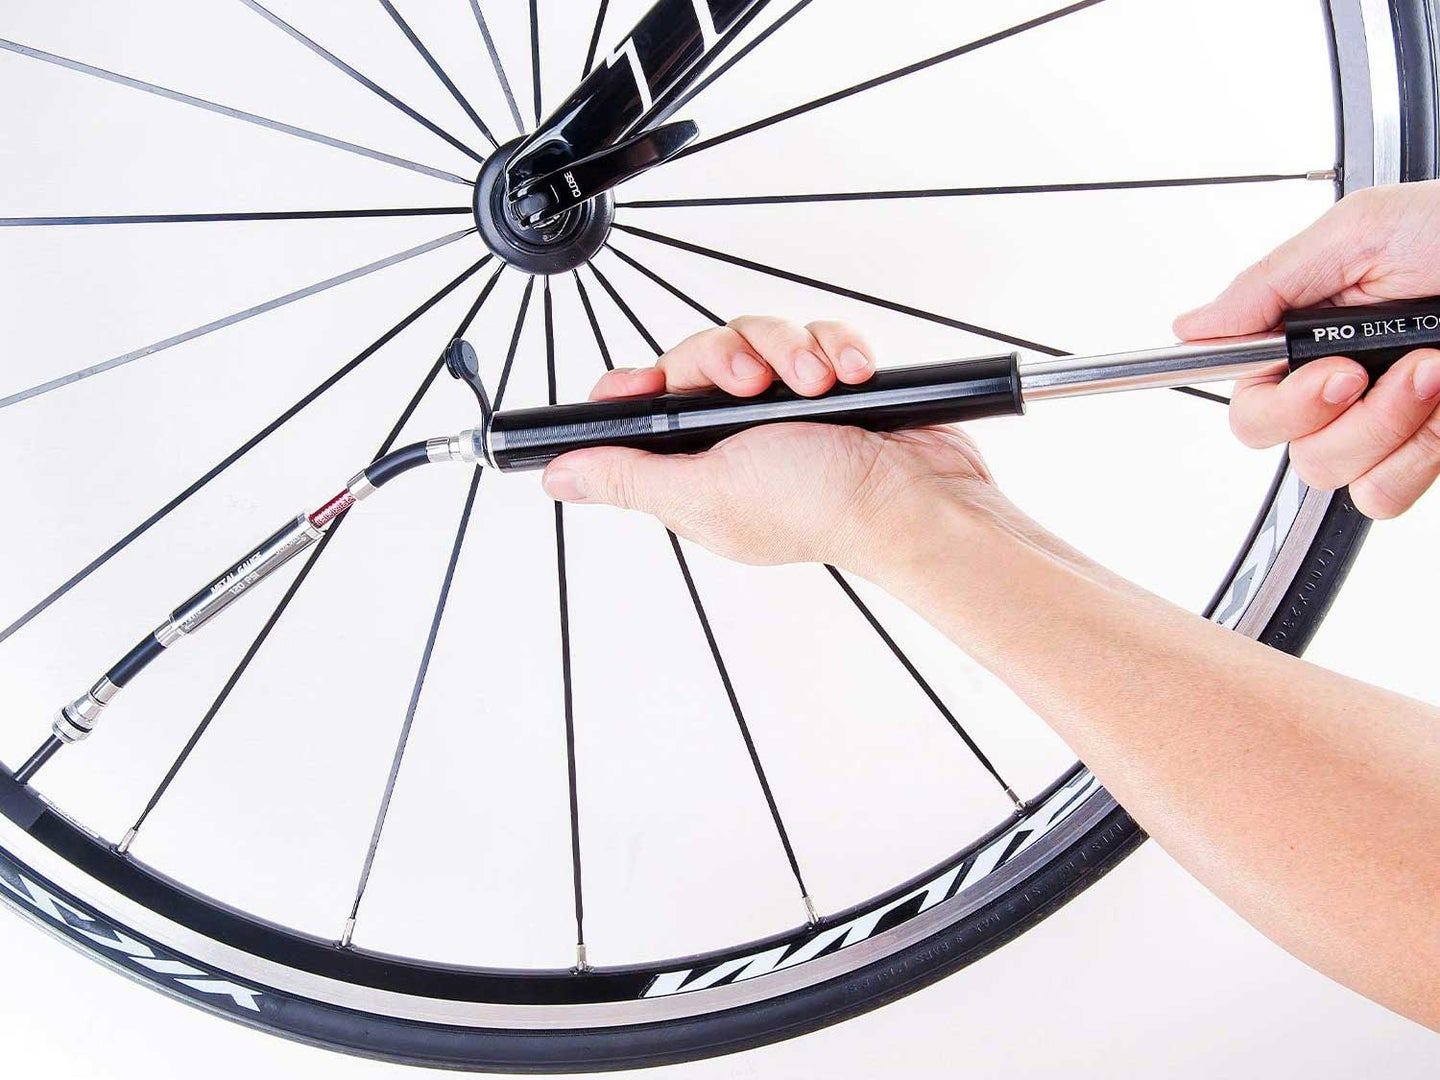 Inflating bike tire with pump